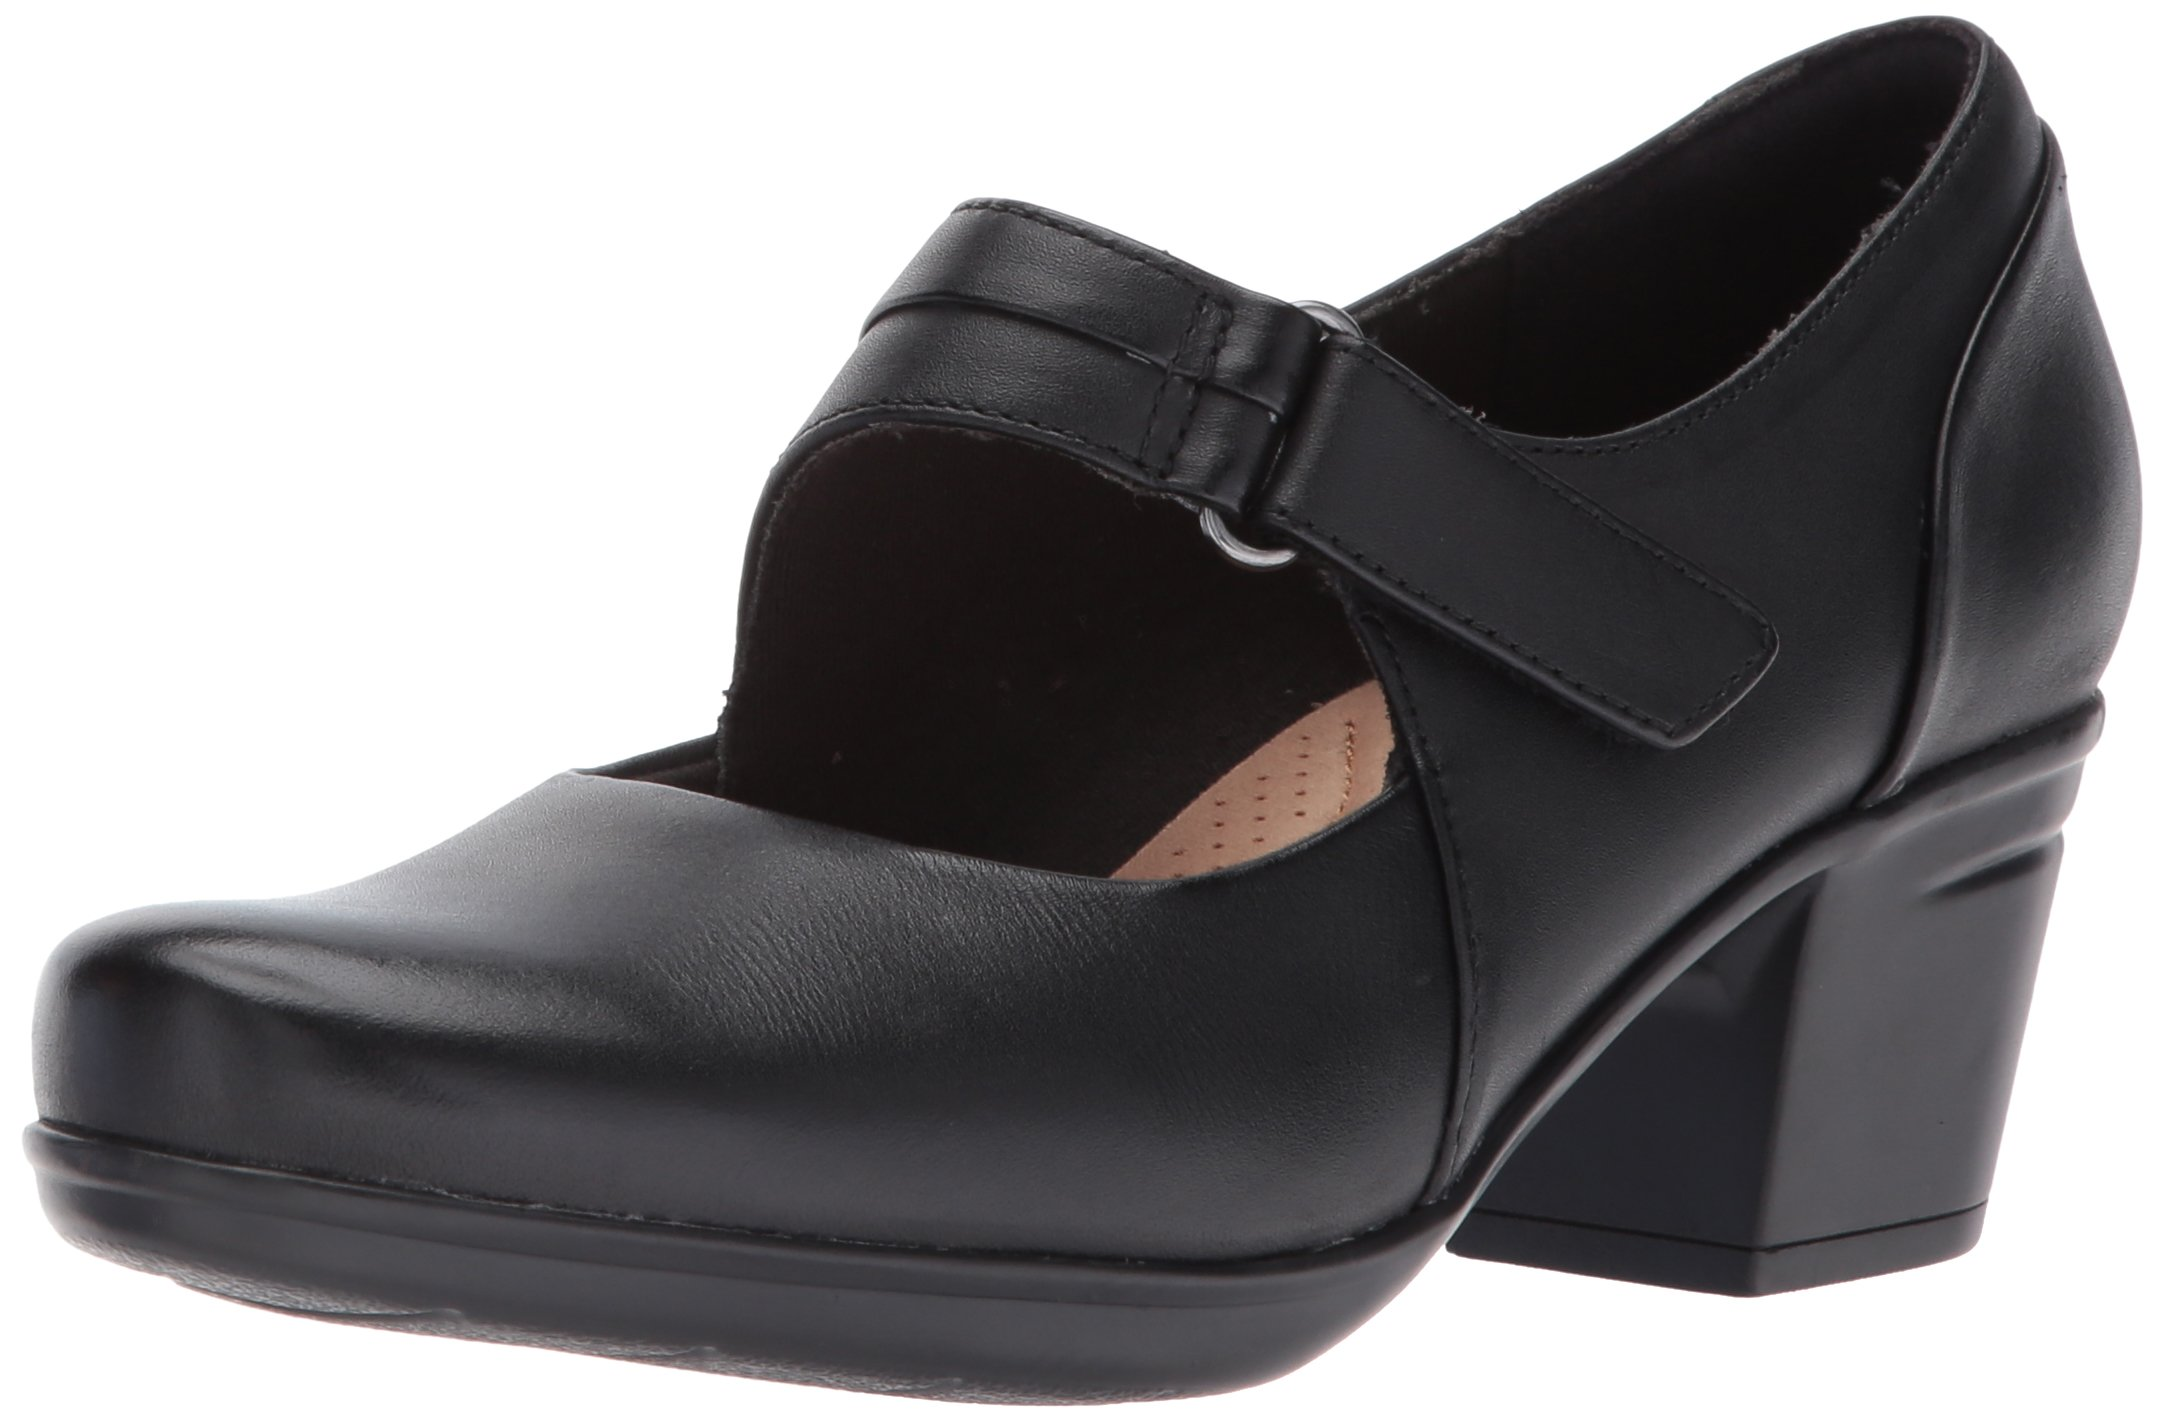 CLARKS Women's Emslie Lulin Dress Pump, Black, 8 M US